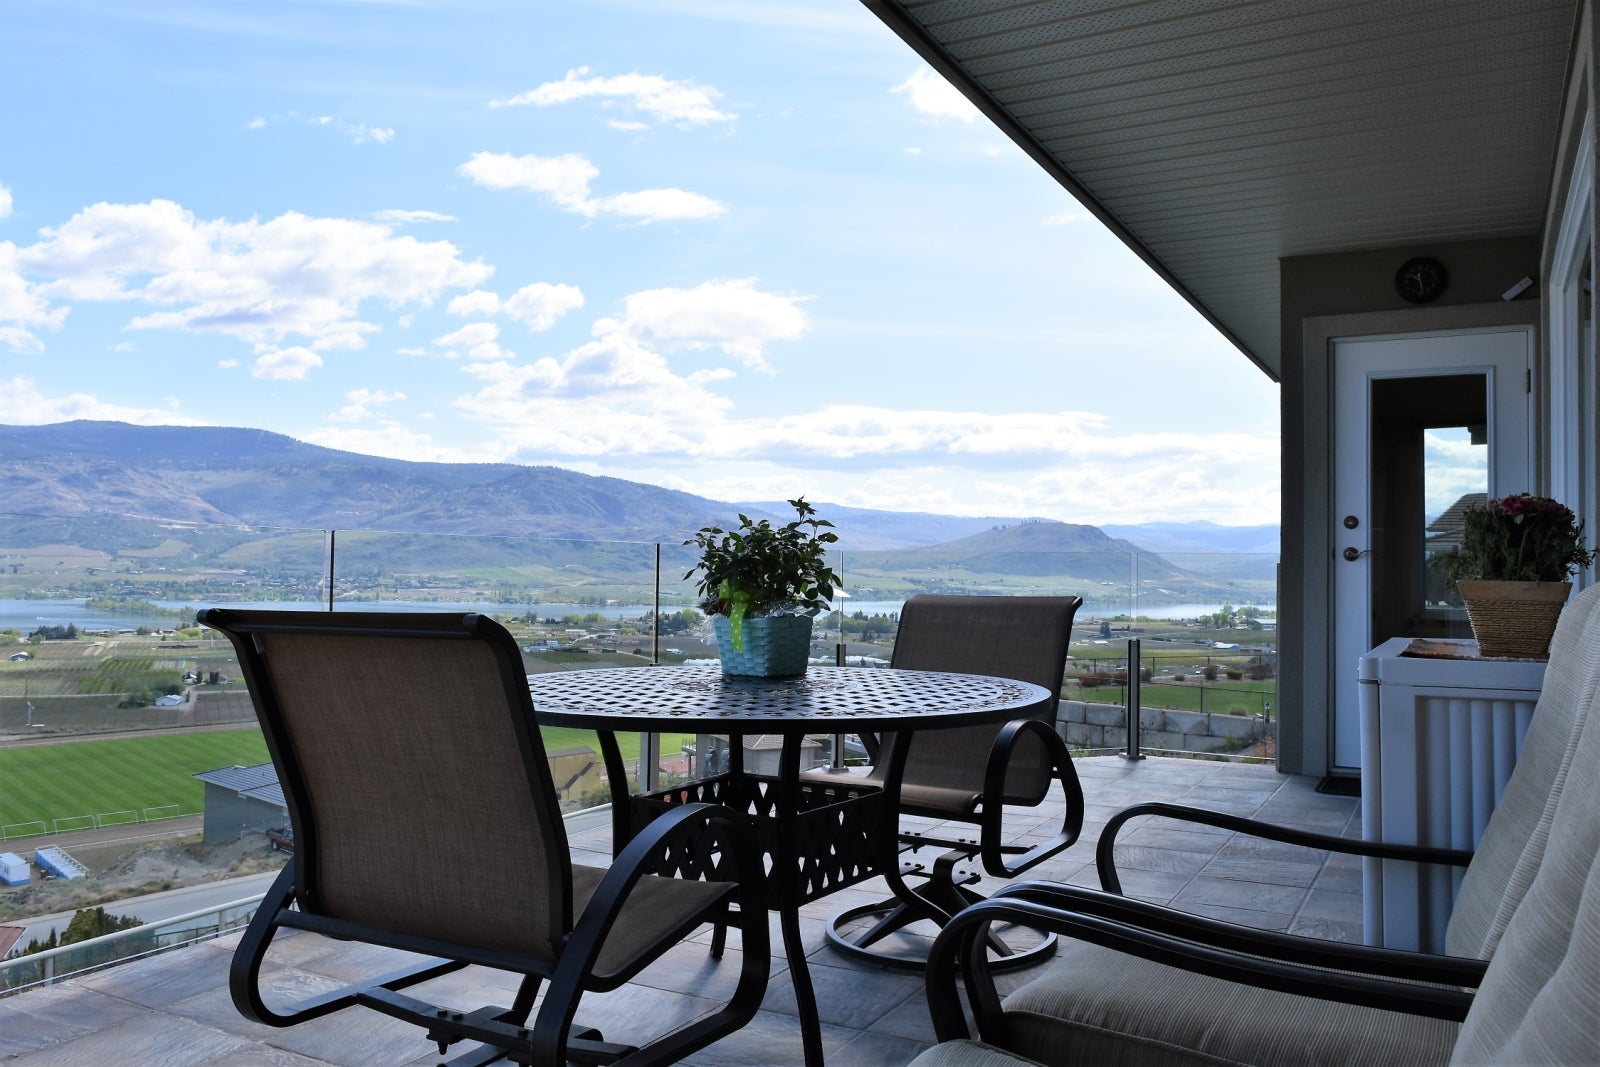 11715 Olympic View Drive - Osoyoos Single Family for sale, 4 Bedrooms (176846) #11